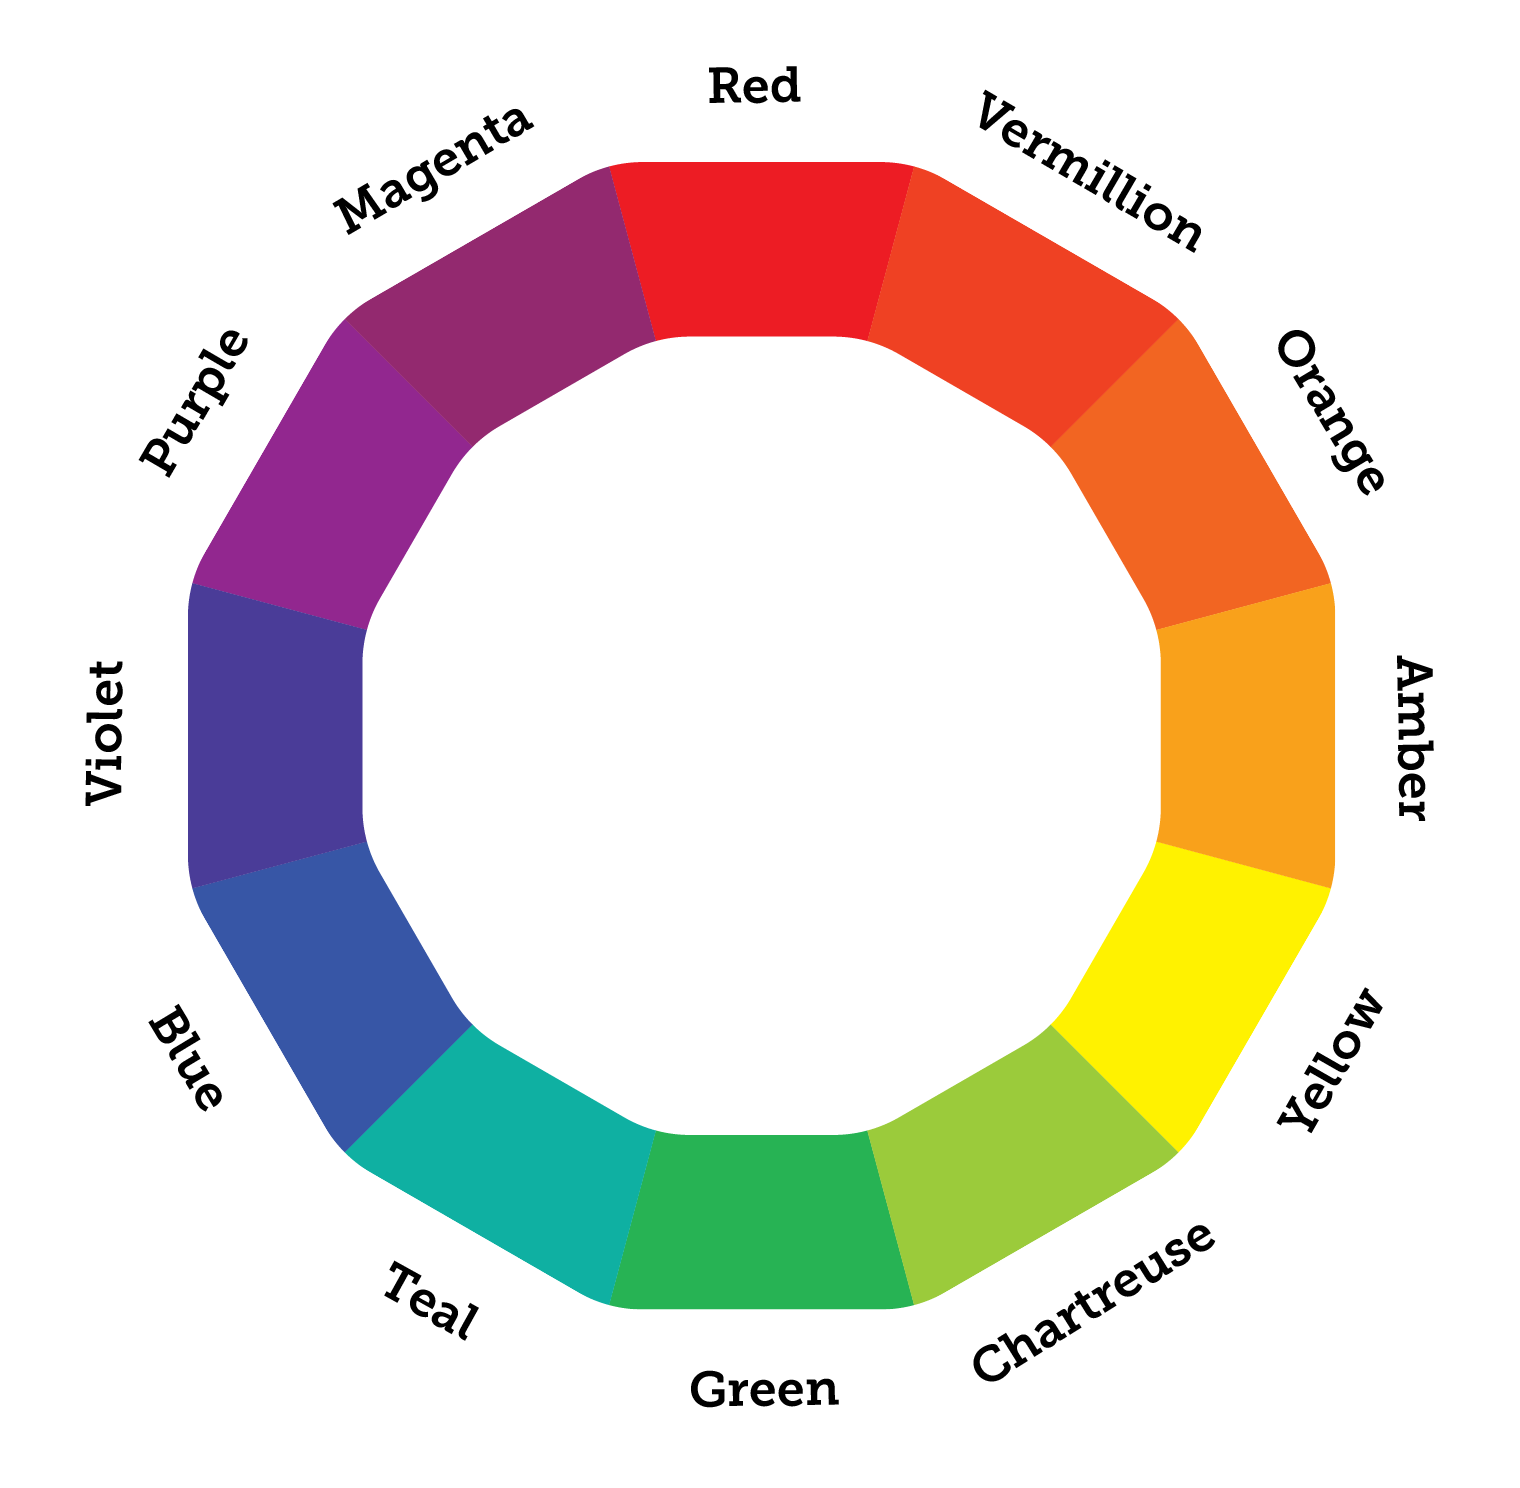 Colors: How To Pick Colors To Captivate Readers And Communicate